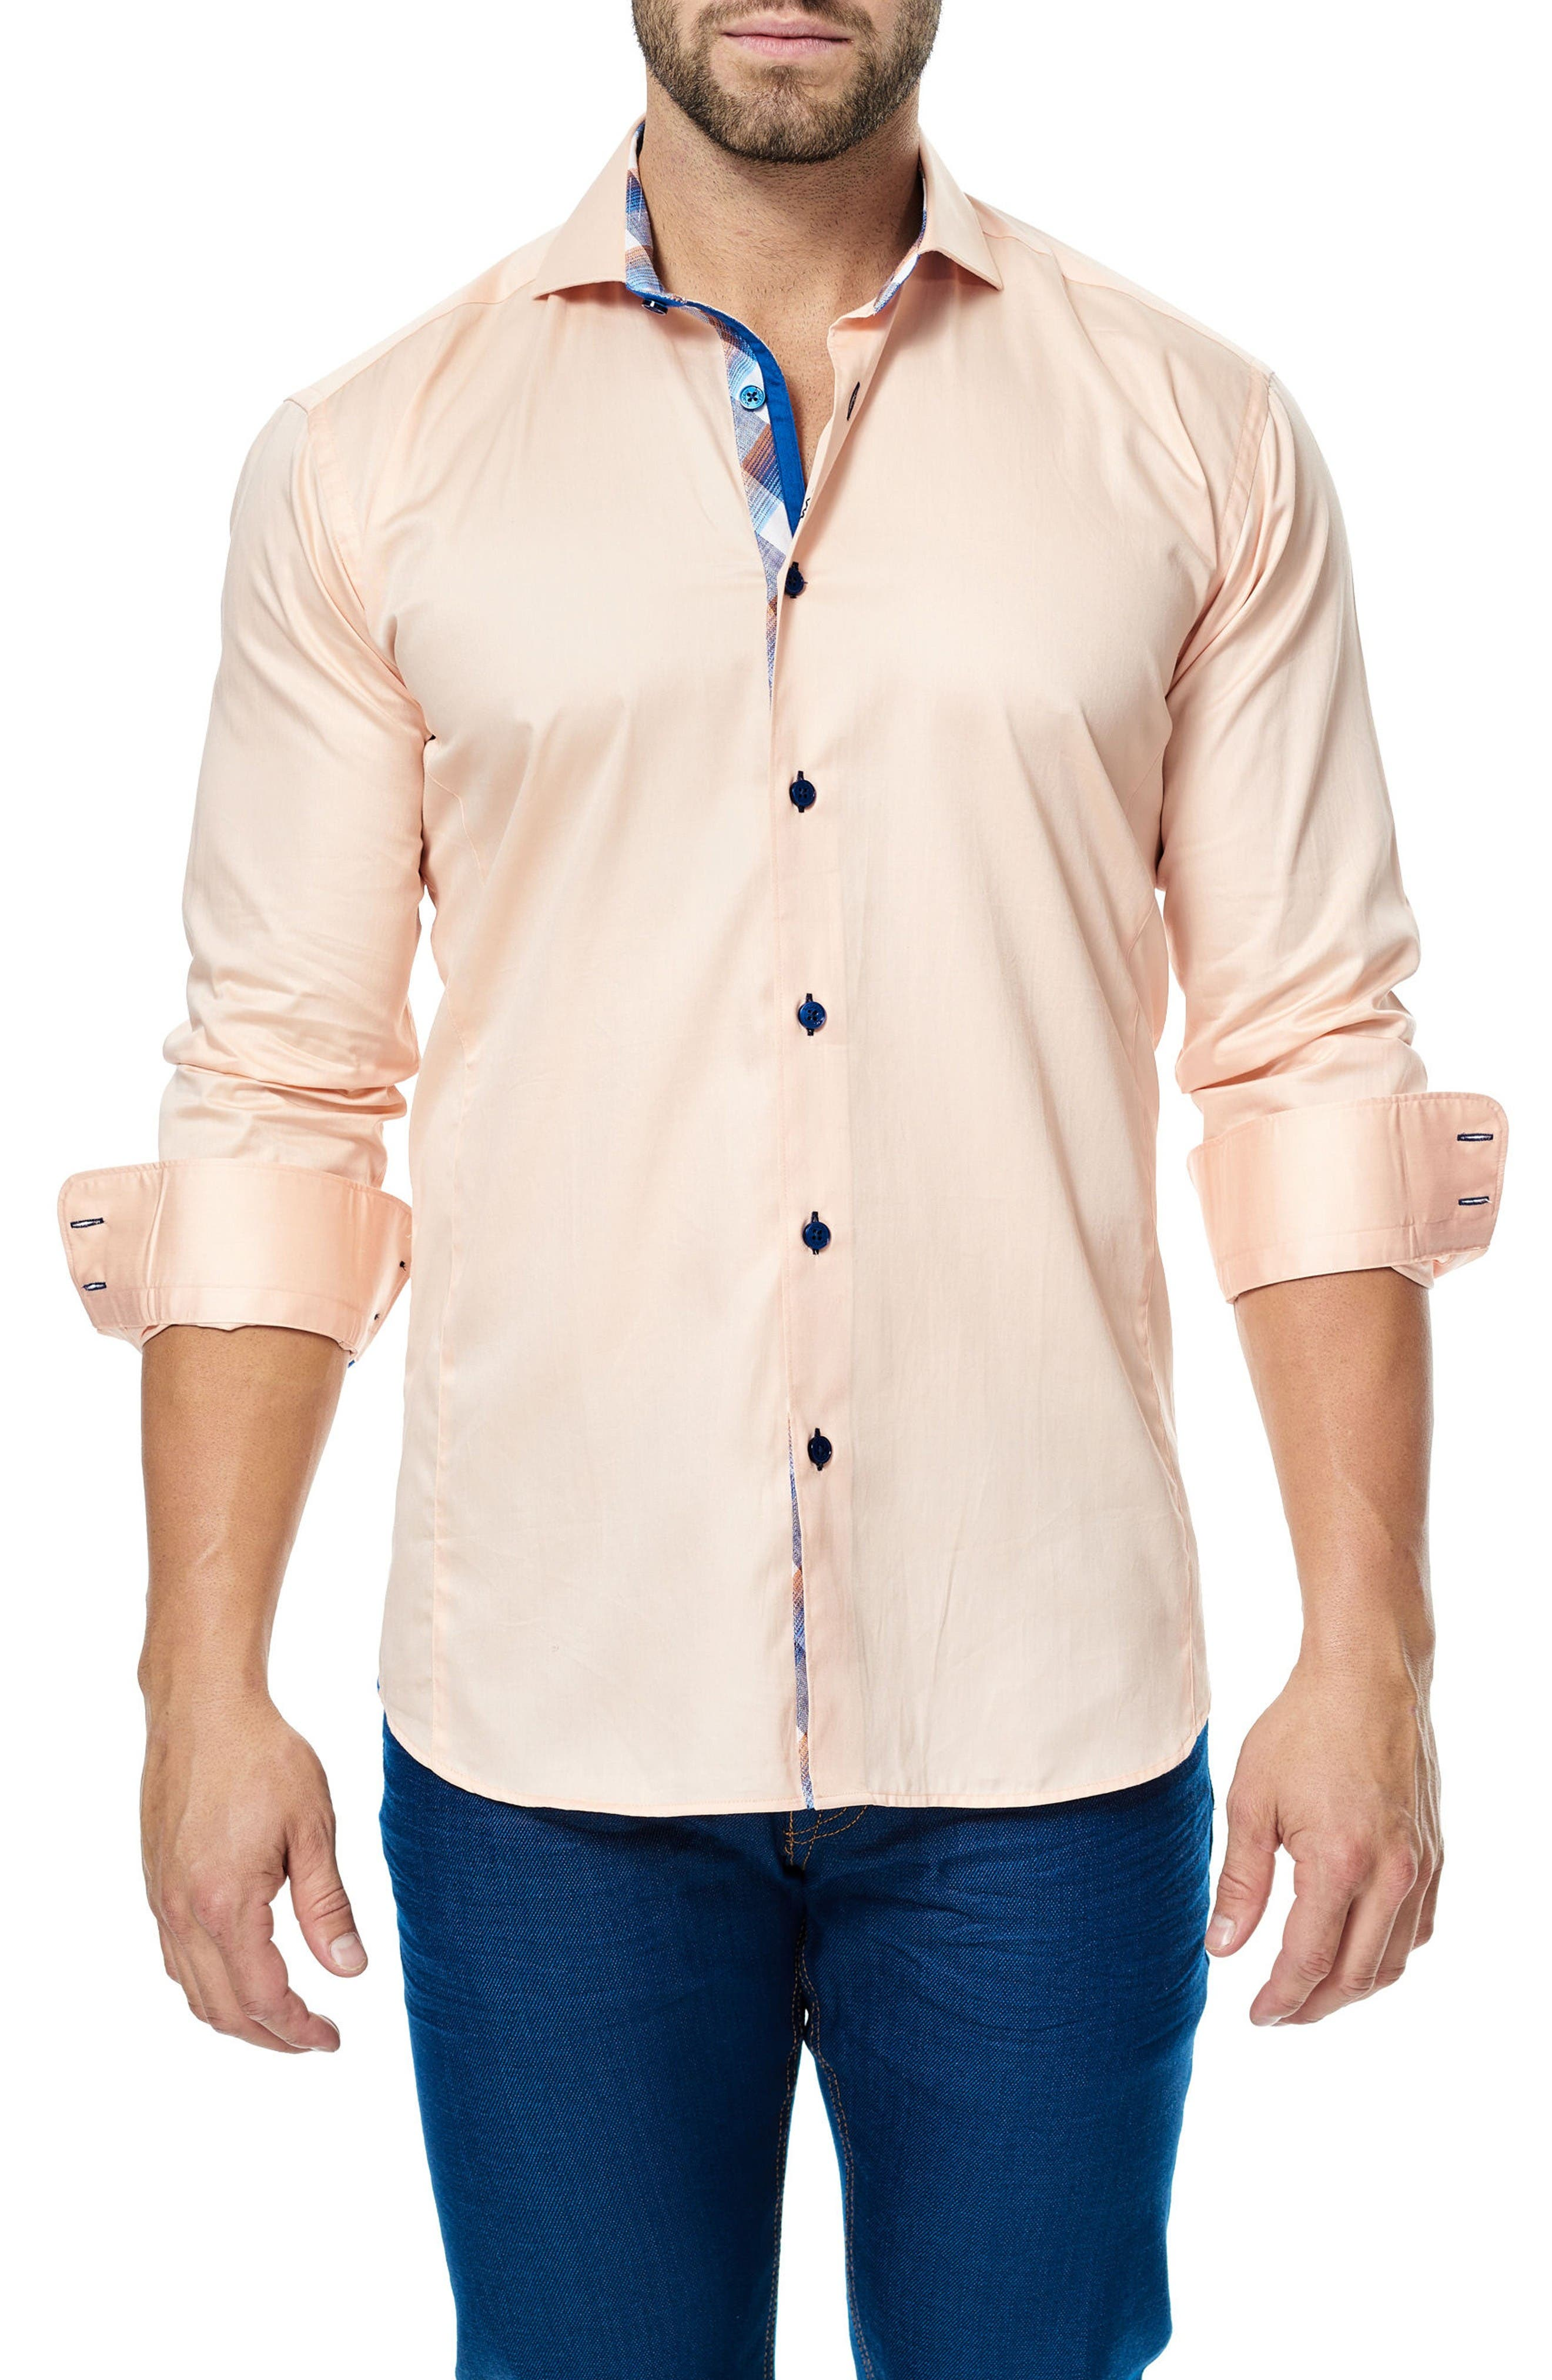 Maceoo Wall Street Sport Shirt